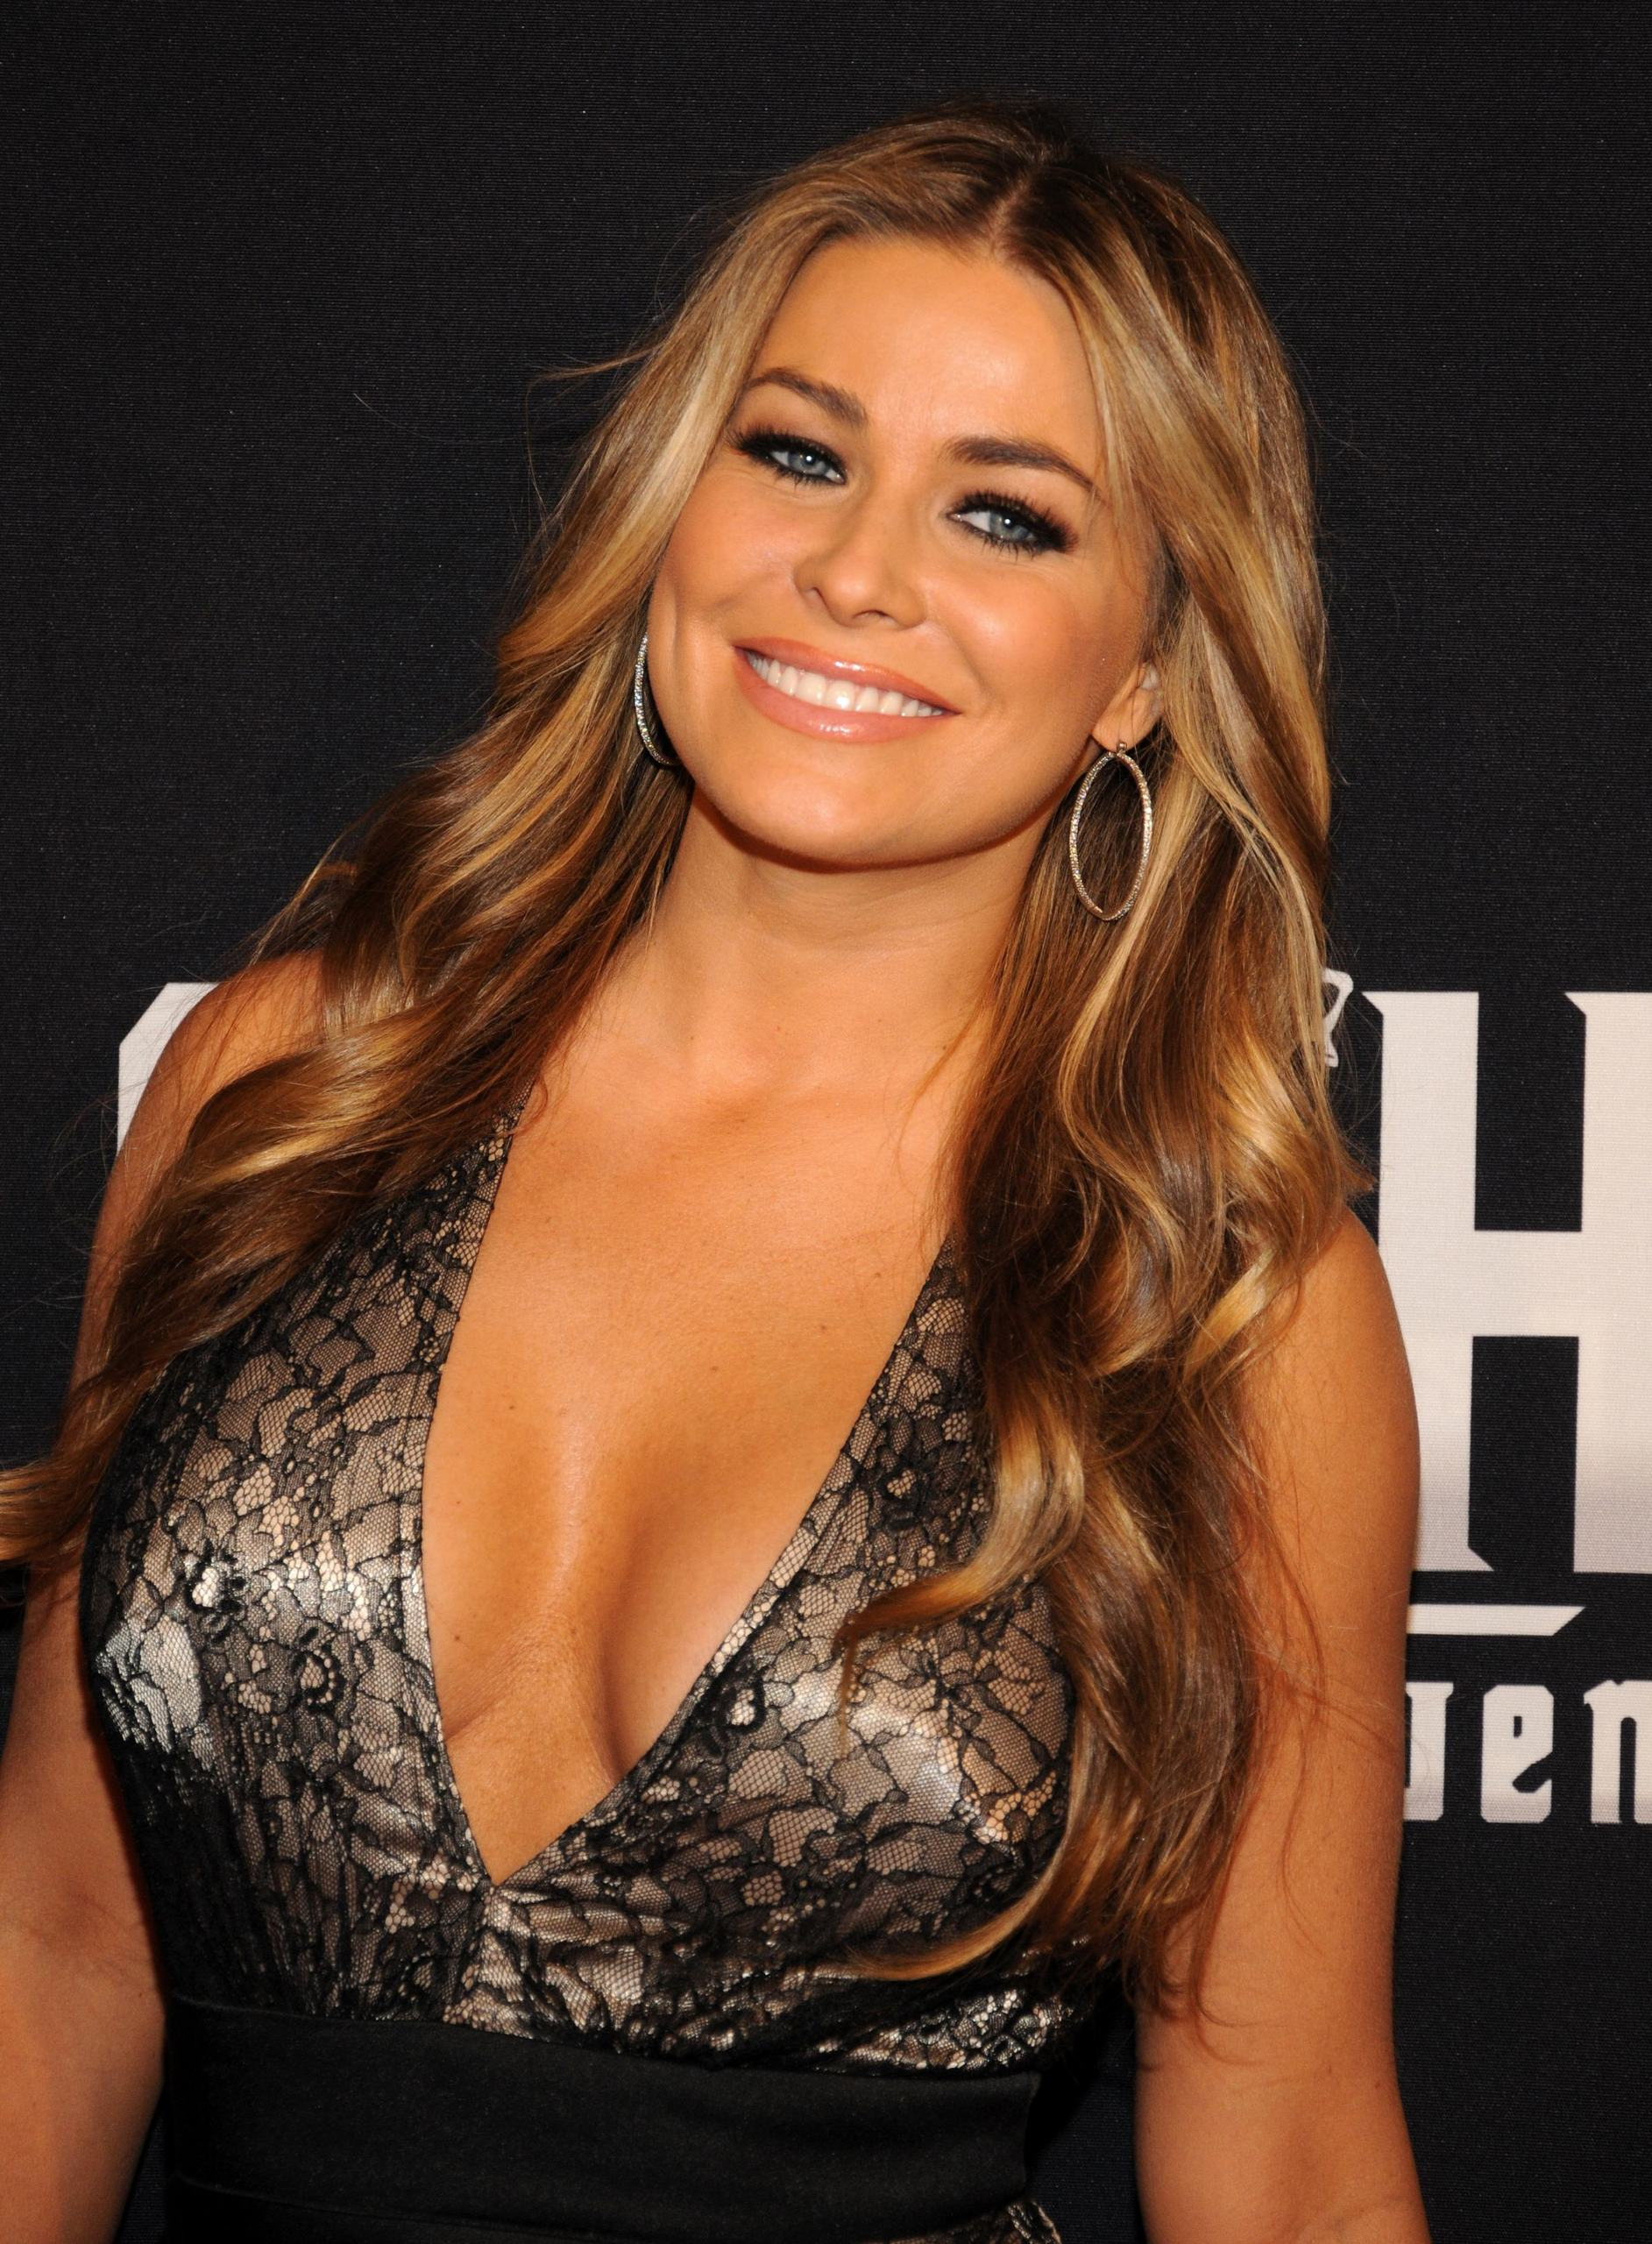 Carmen - Mix - Carmen Electra Photo (29361894) - Fanpop